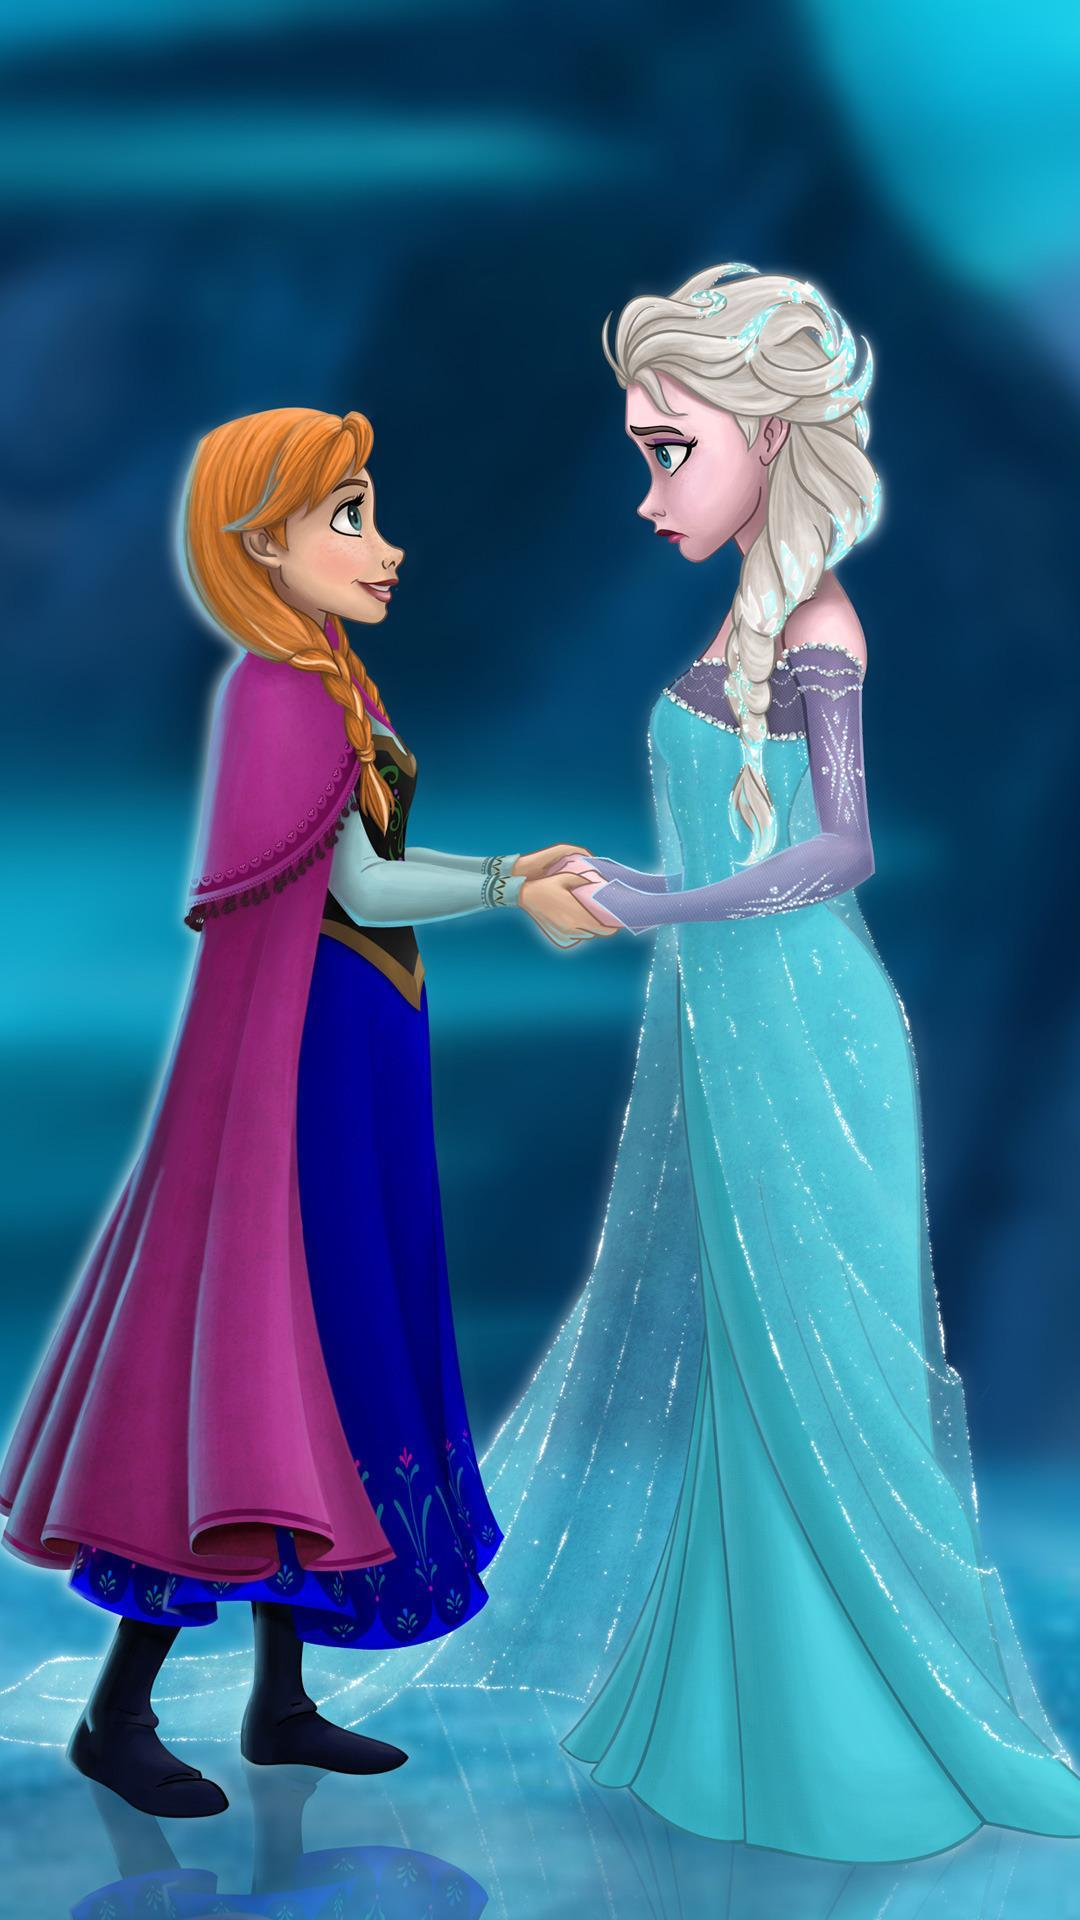 Frozen Wallpaper Anna And Elsa For Android Apk Download